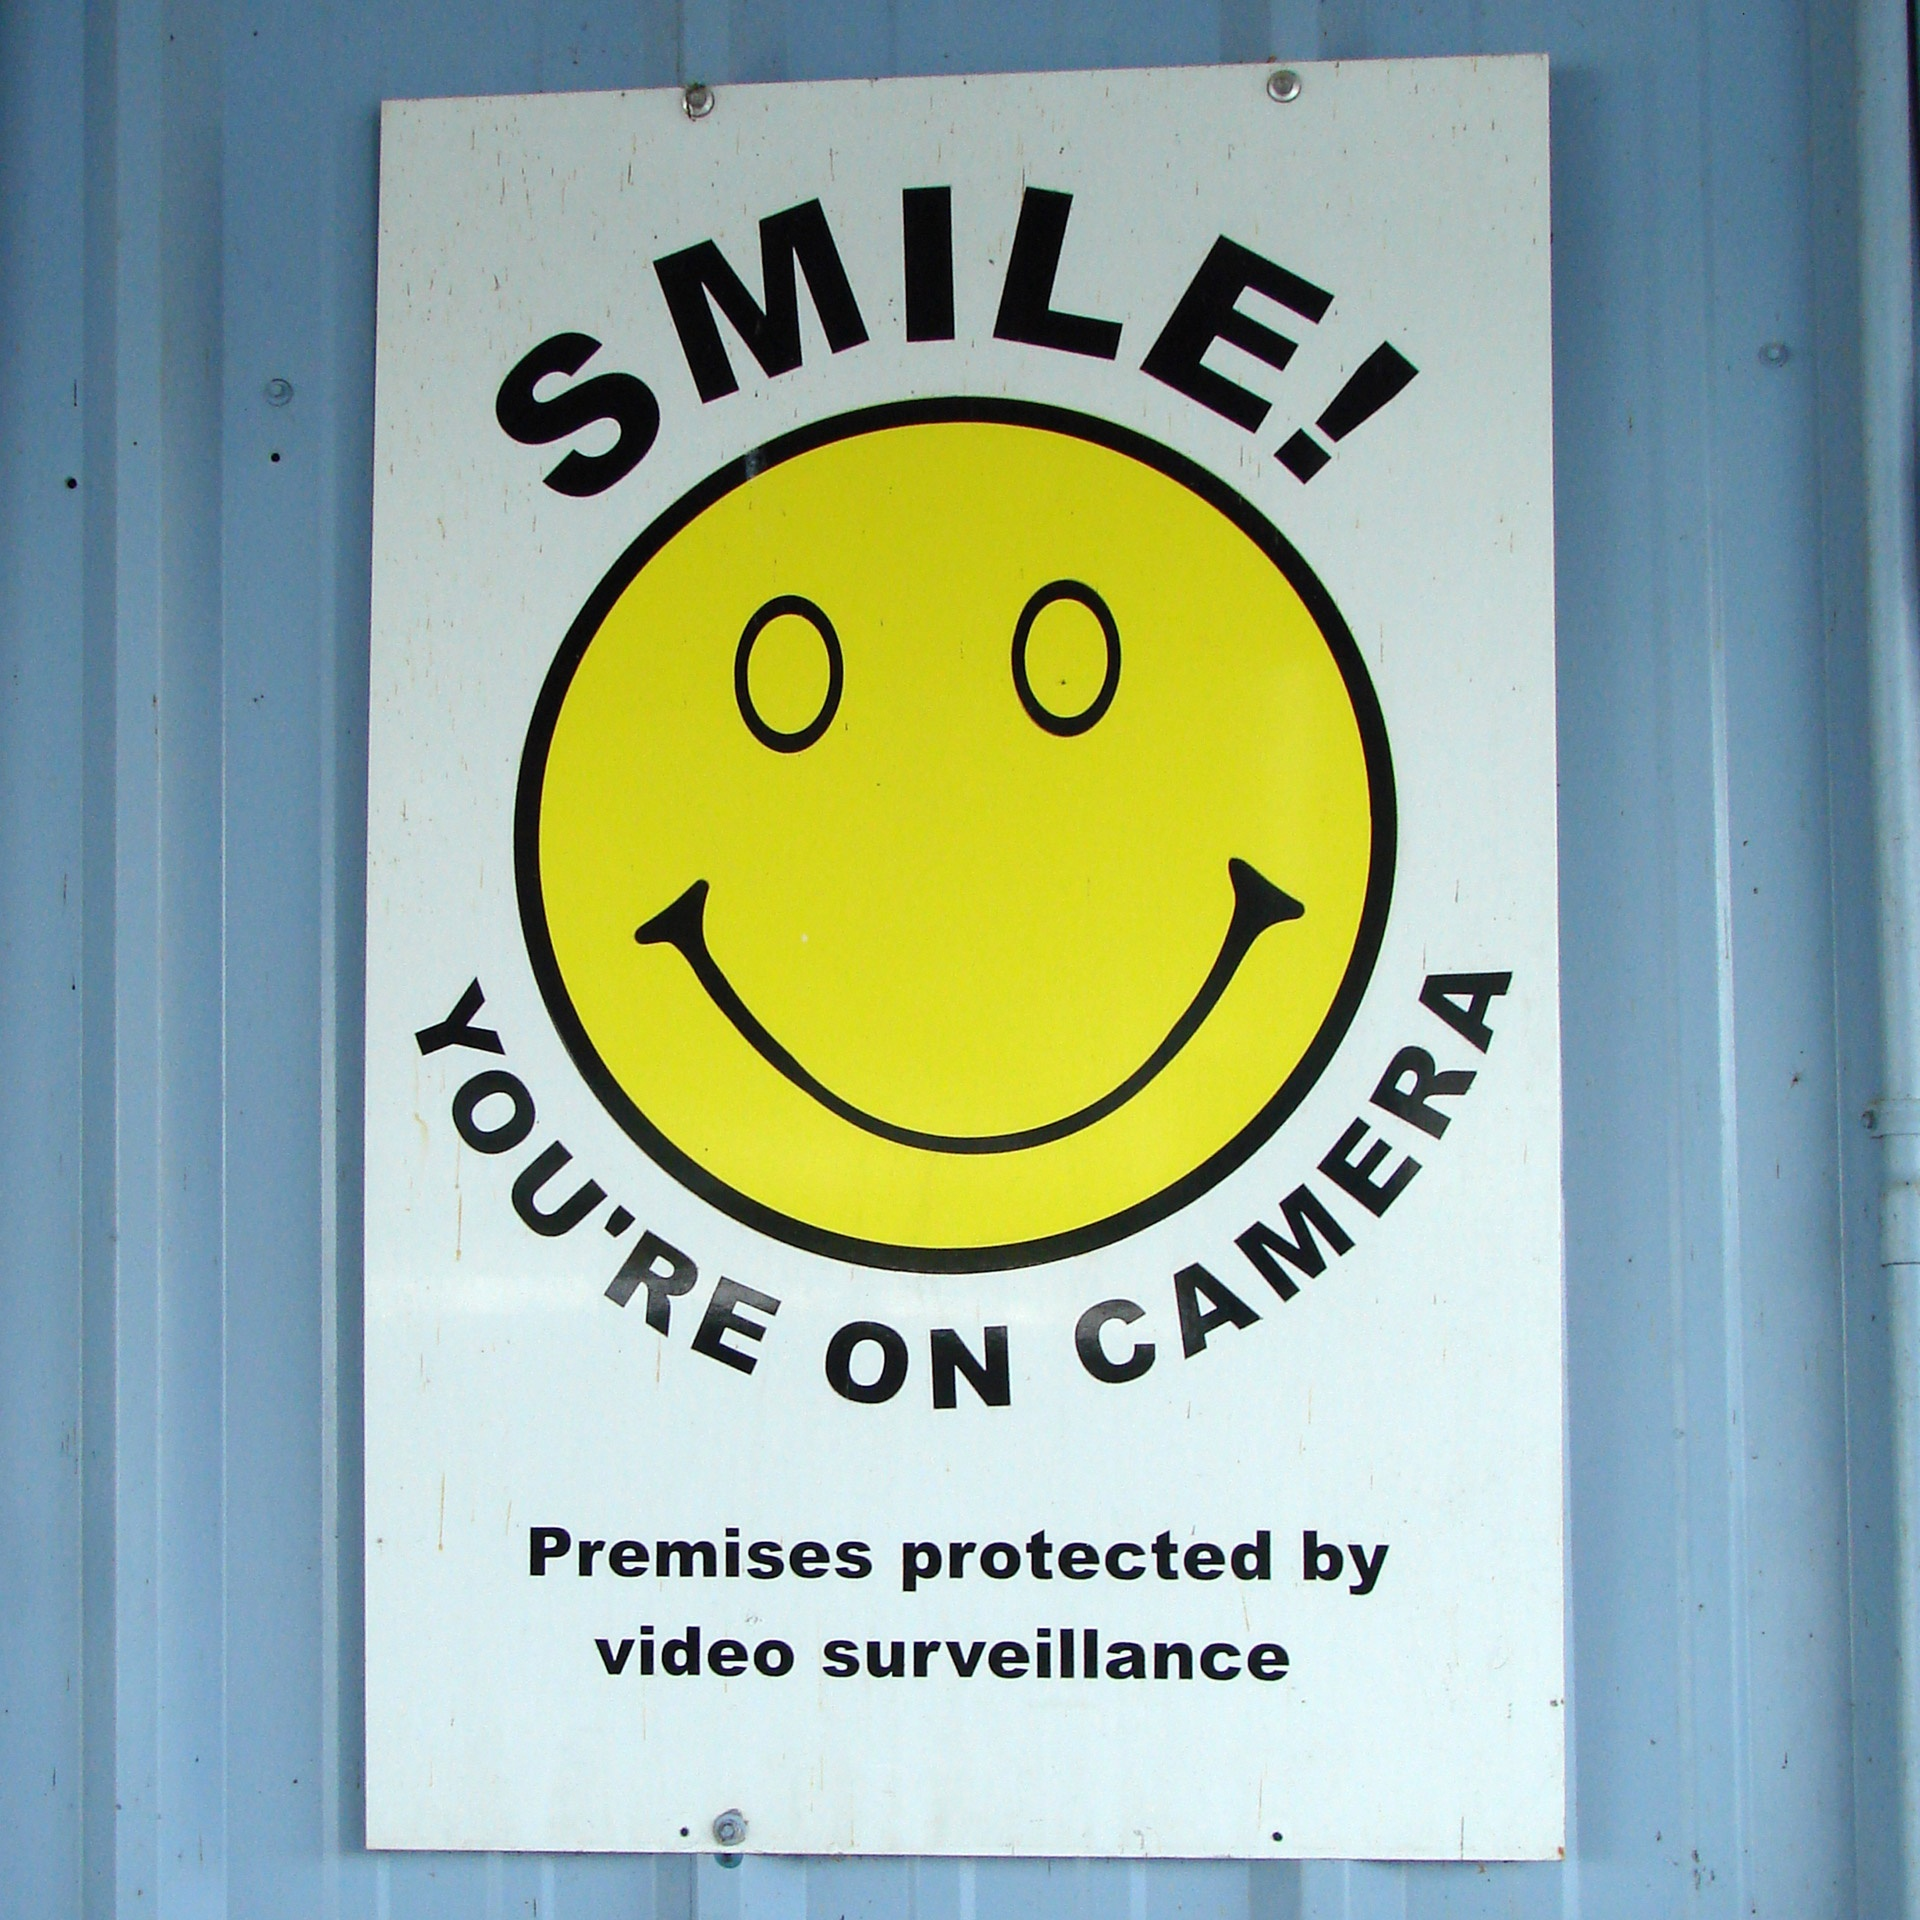 Free Printable Smile Your On Camera Sign - Collections Photos Camera - Free Printable Smile Your On Camera